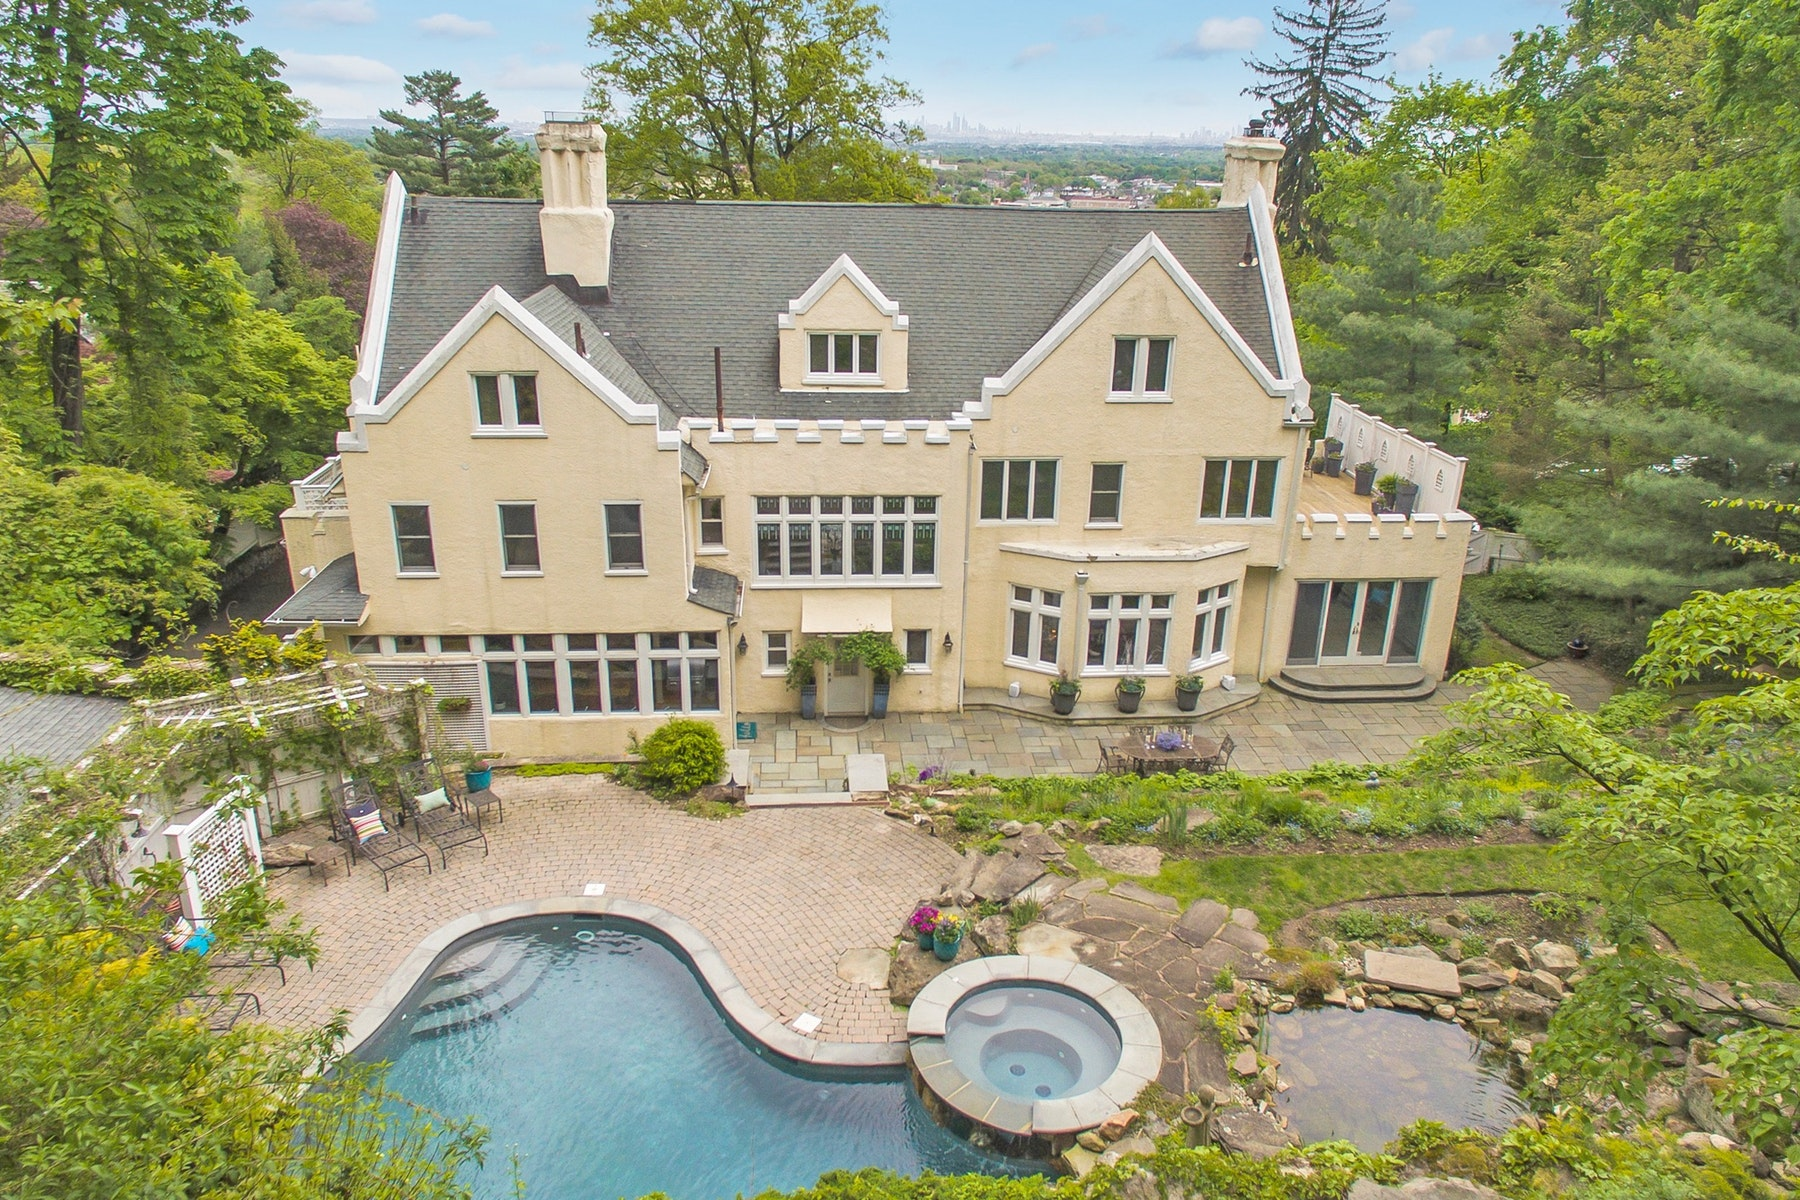 Single Family Homes for Sale at Resort Living with Skyline Views 60 Lloyd Road Montclair, New Jersey 07042 United States